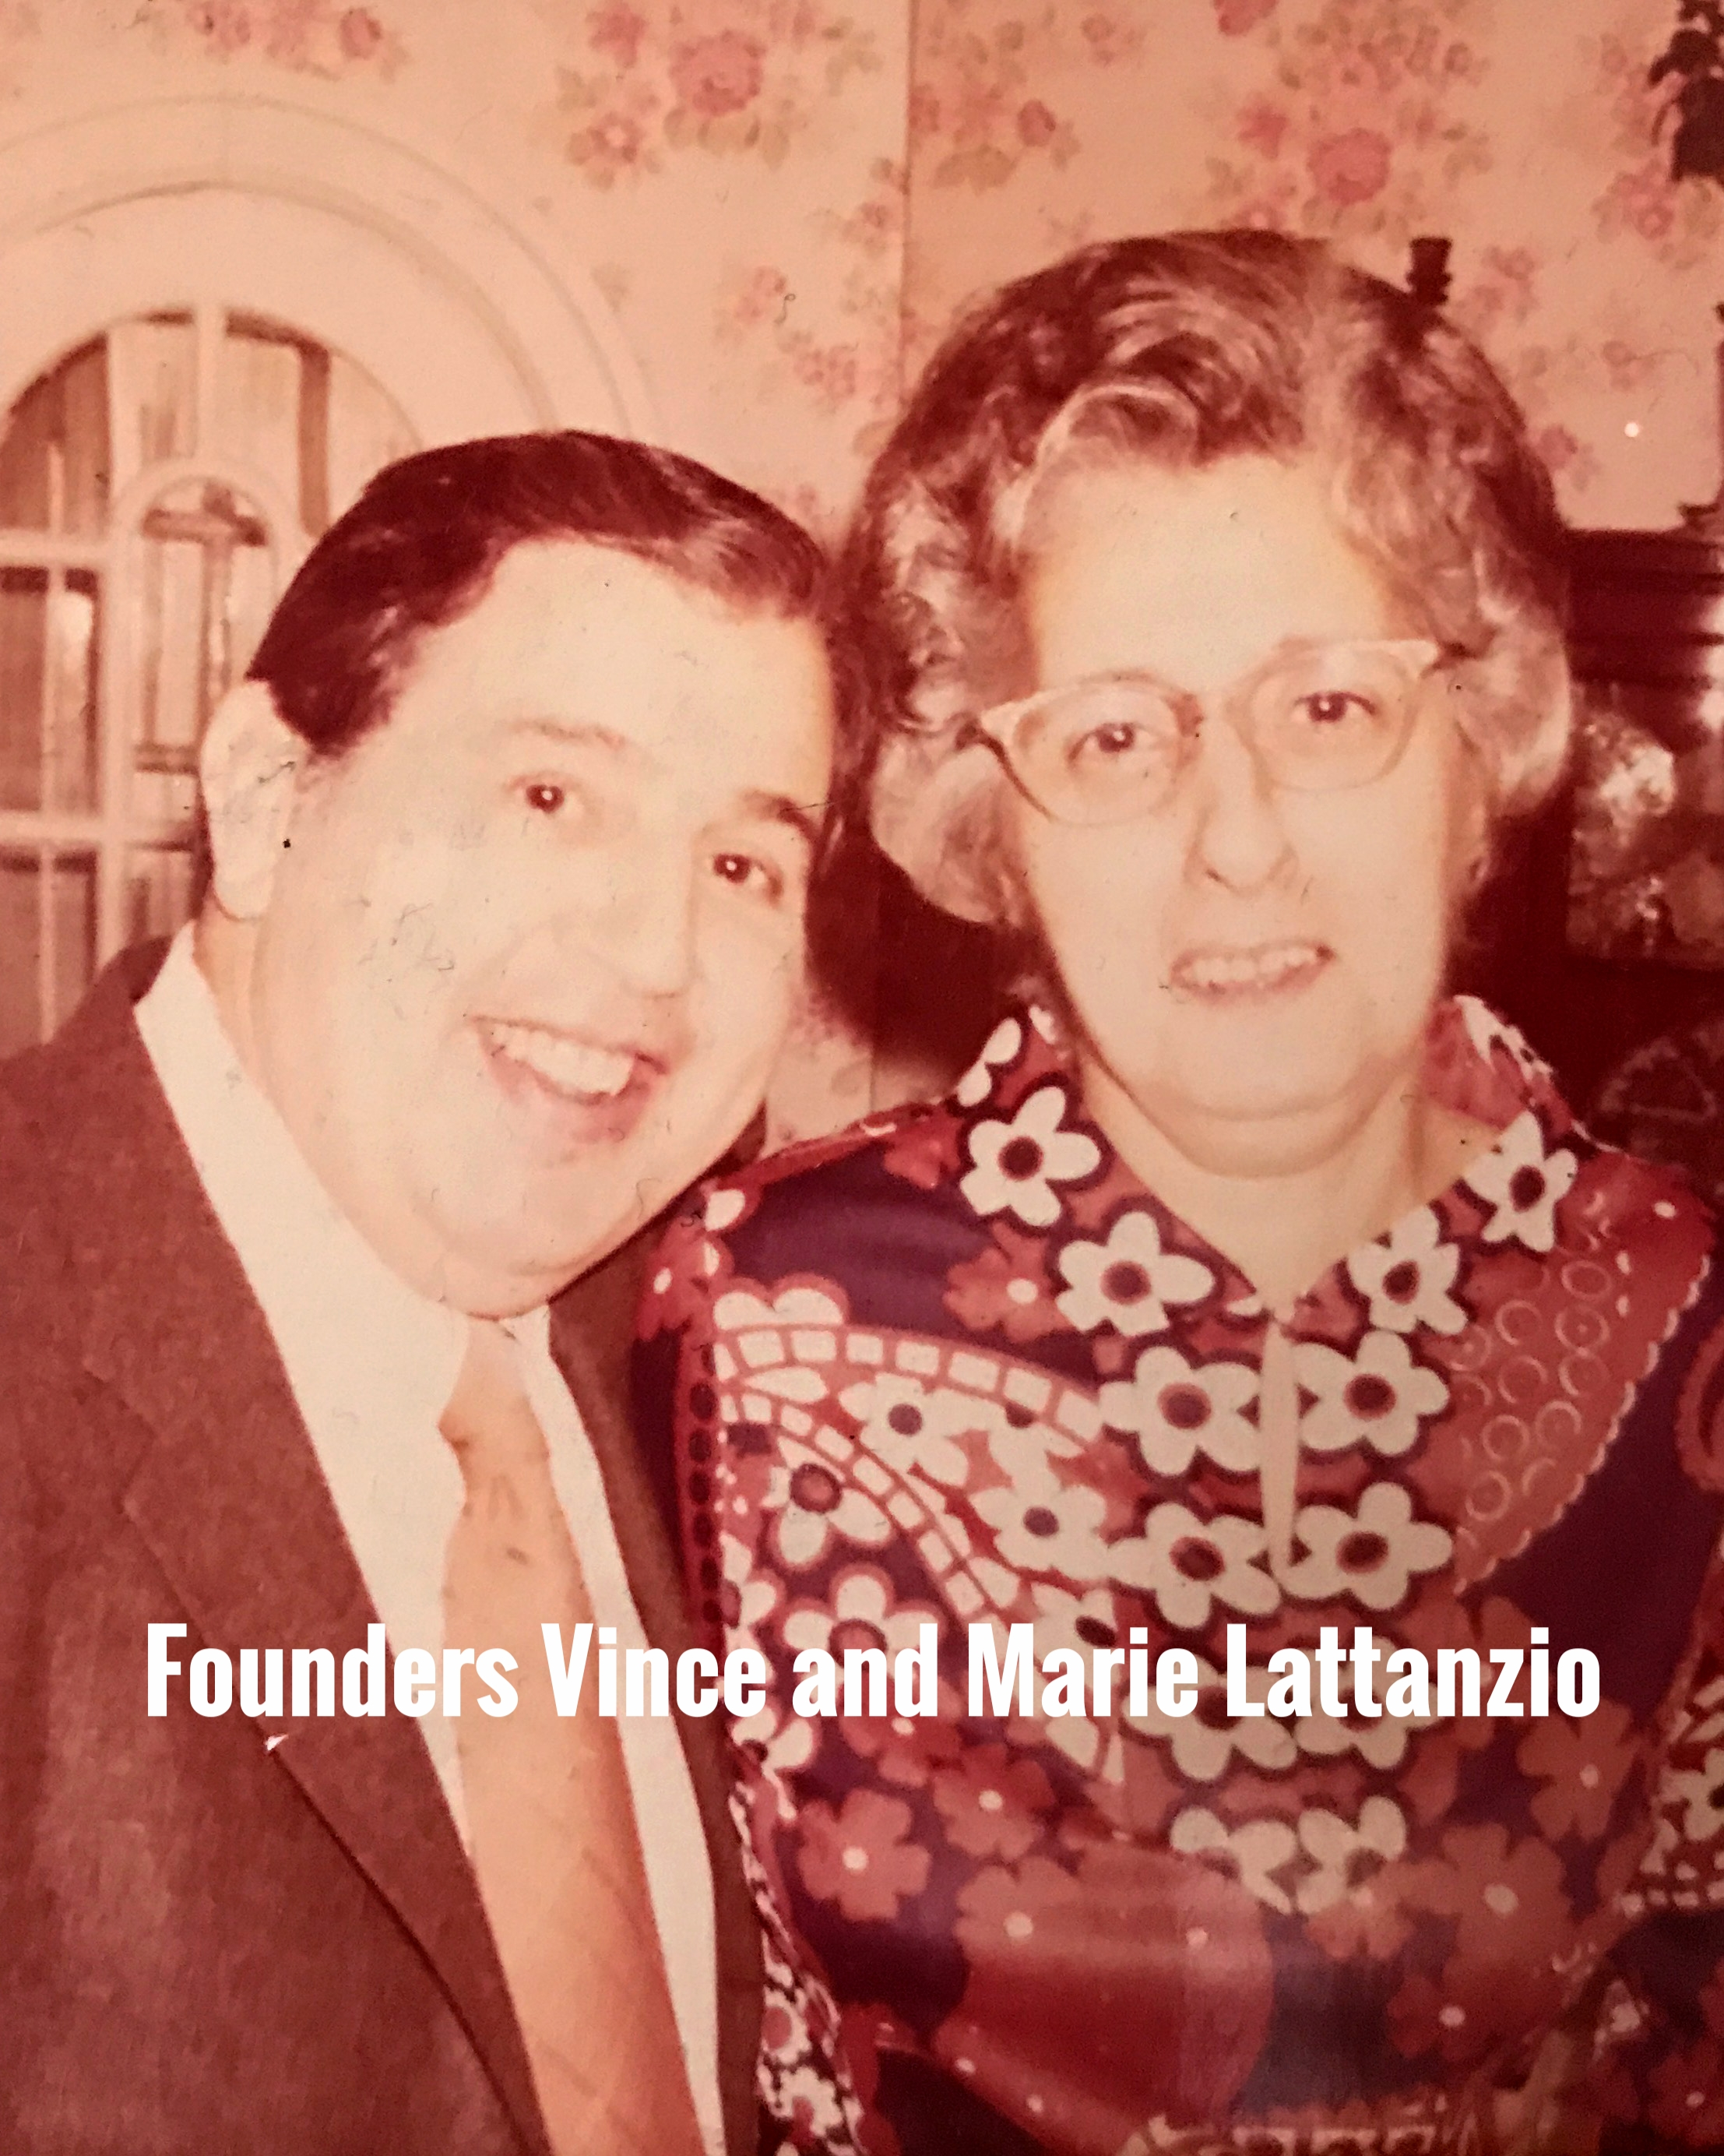 Founders Vince and Marie Lattanzio